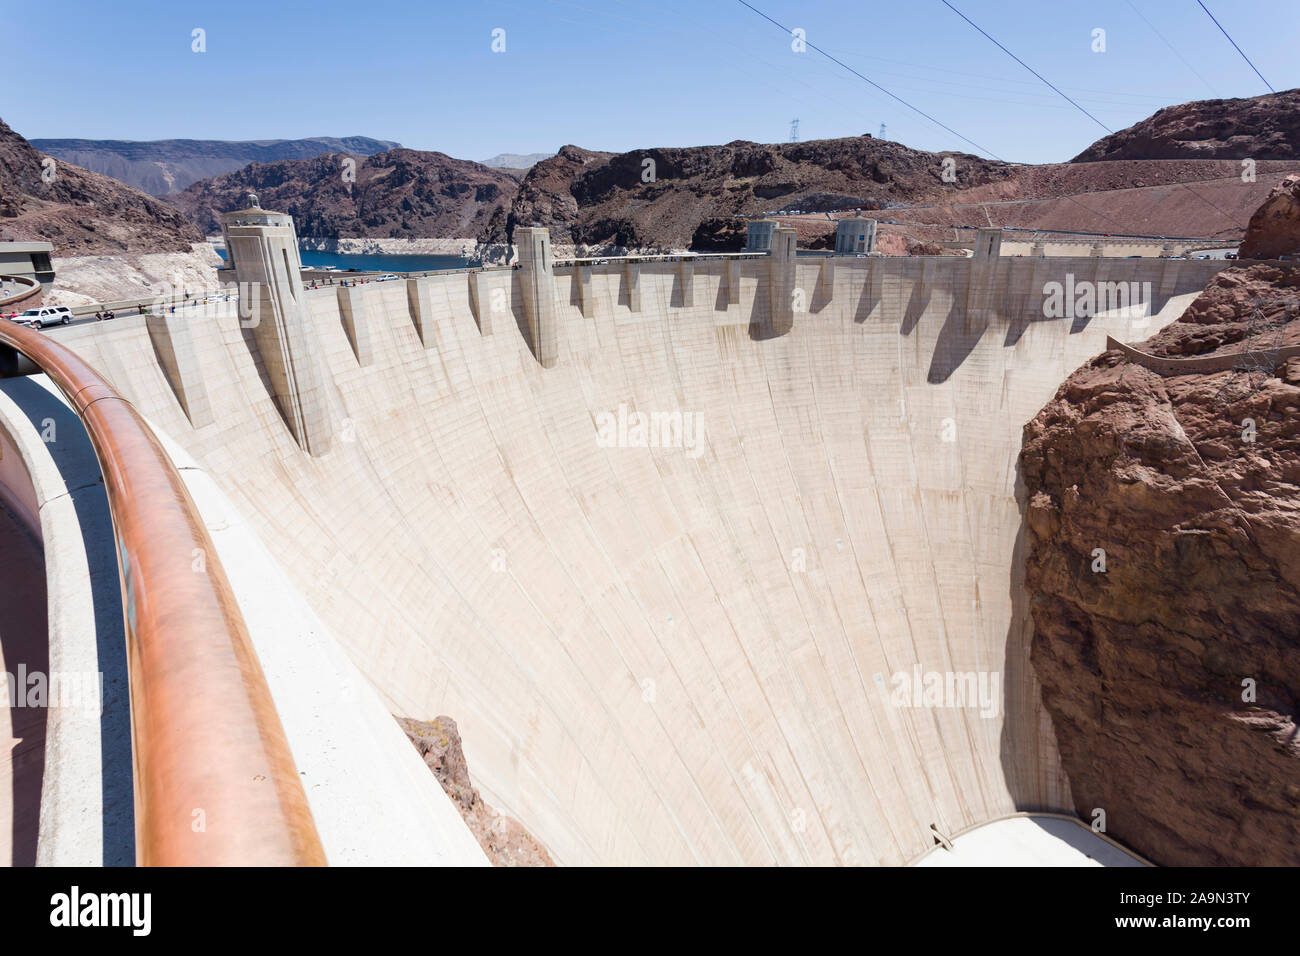 NEVADA, USA - May 21, 2012. Hoover Dam in Nevada, USA. The dam is capable of producing over 2000 megawatts of electricity. Stock Photo